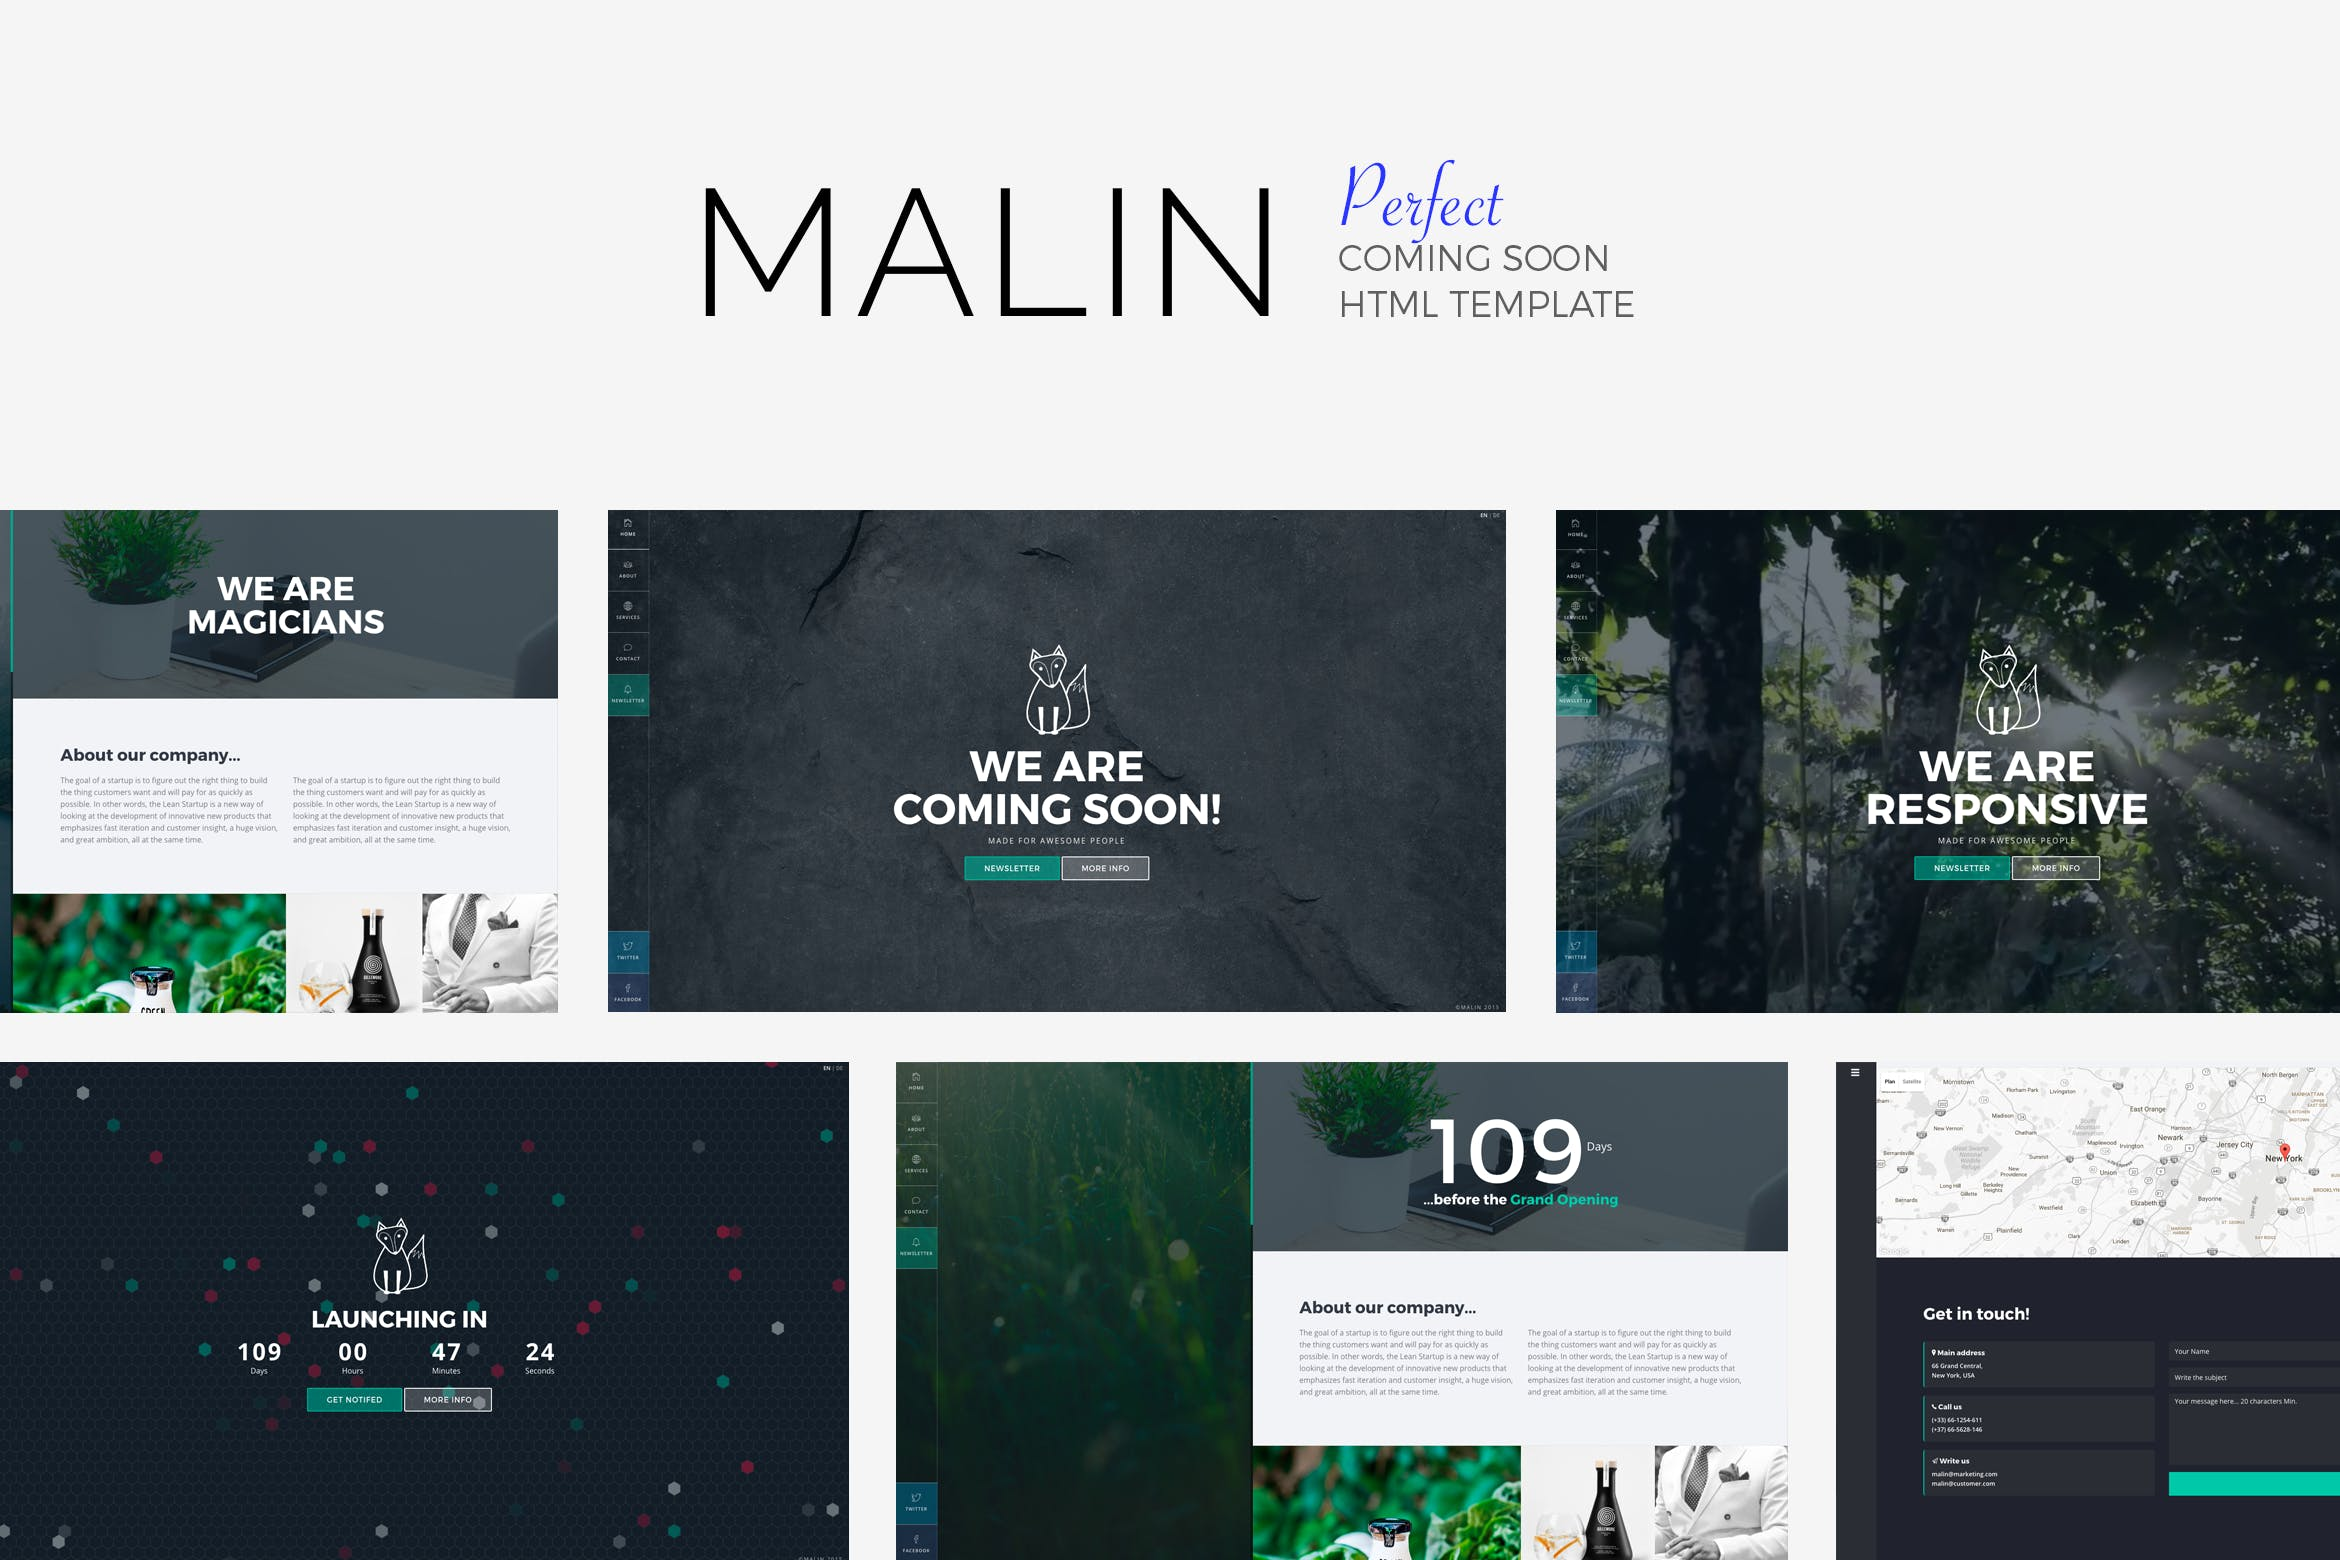 PURE - Sublime Coming Soon Template by Madeon08 on Envato Elements